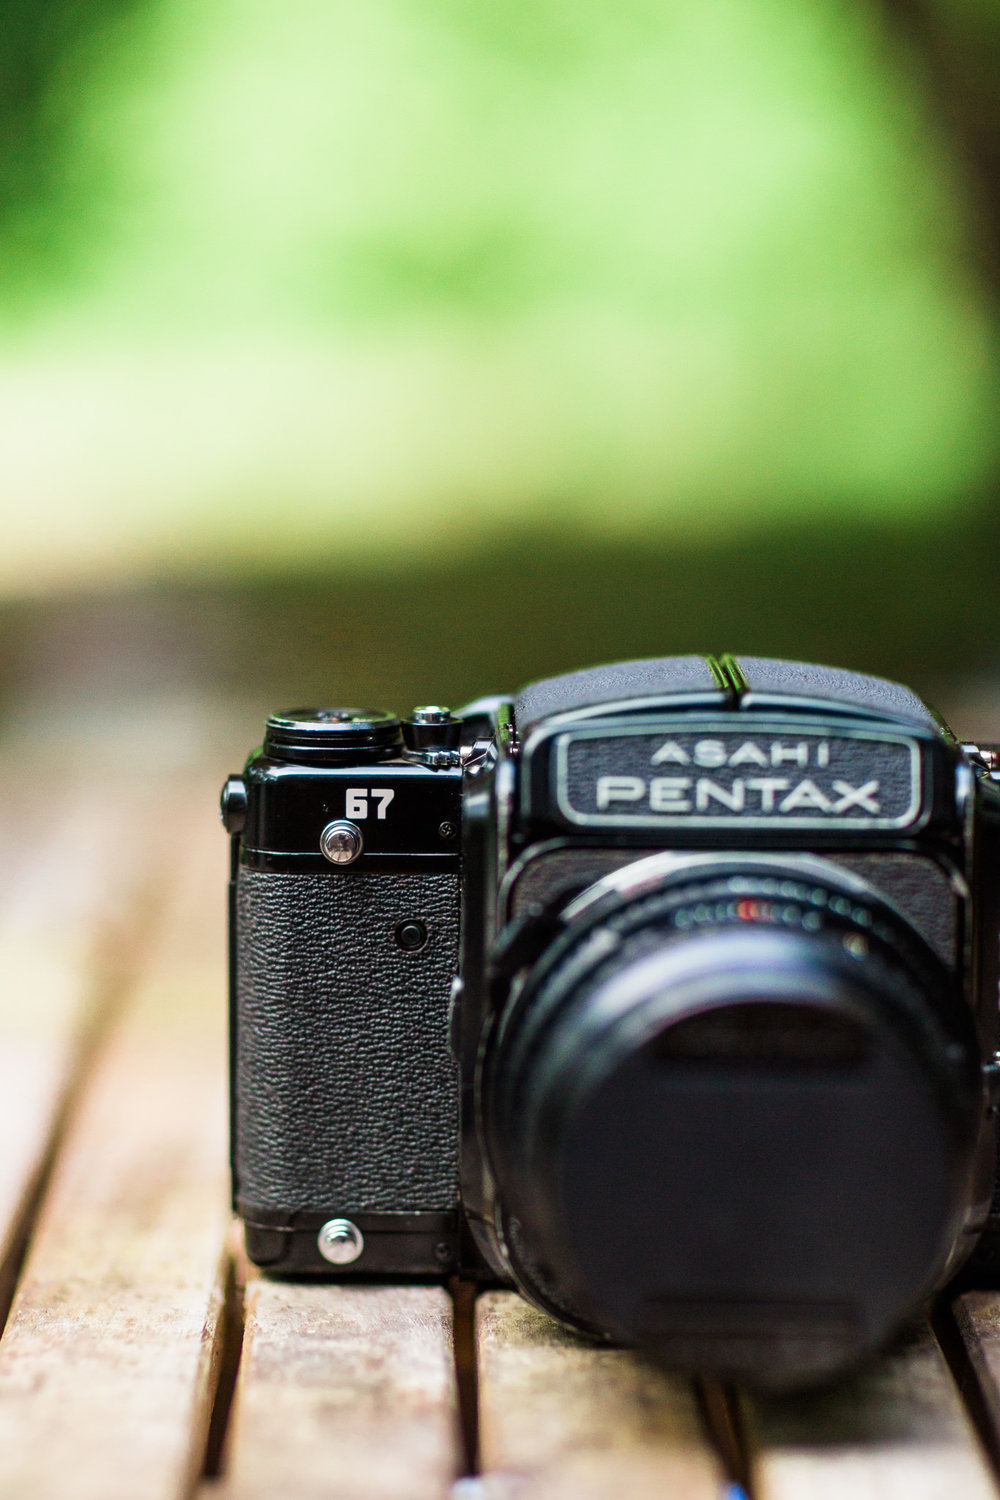 Pentax 67 6x7 with 105mm 2.4 Examples (7 of 15).jpg